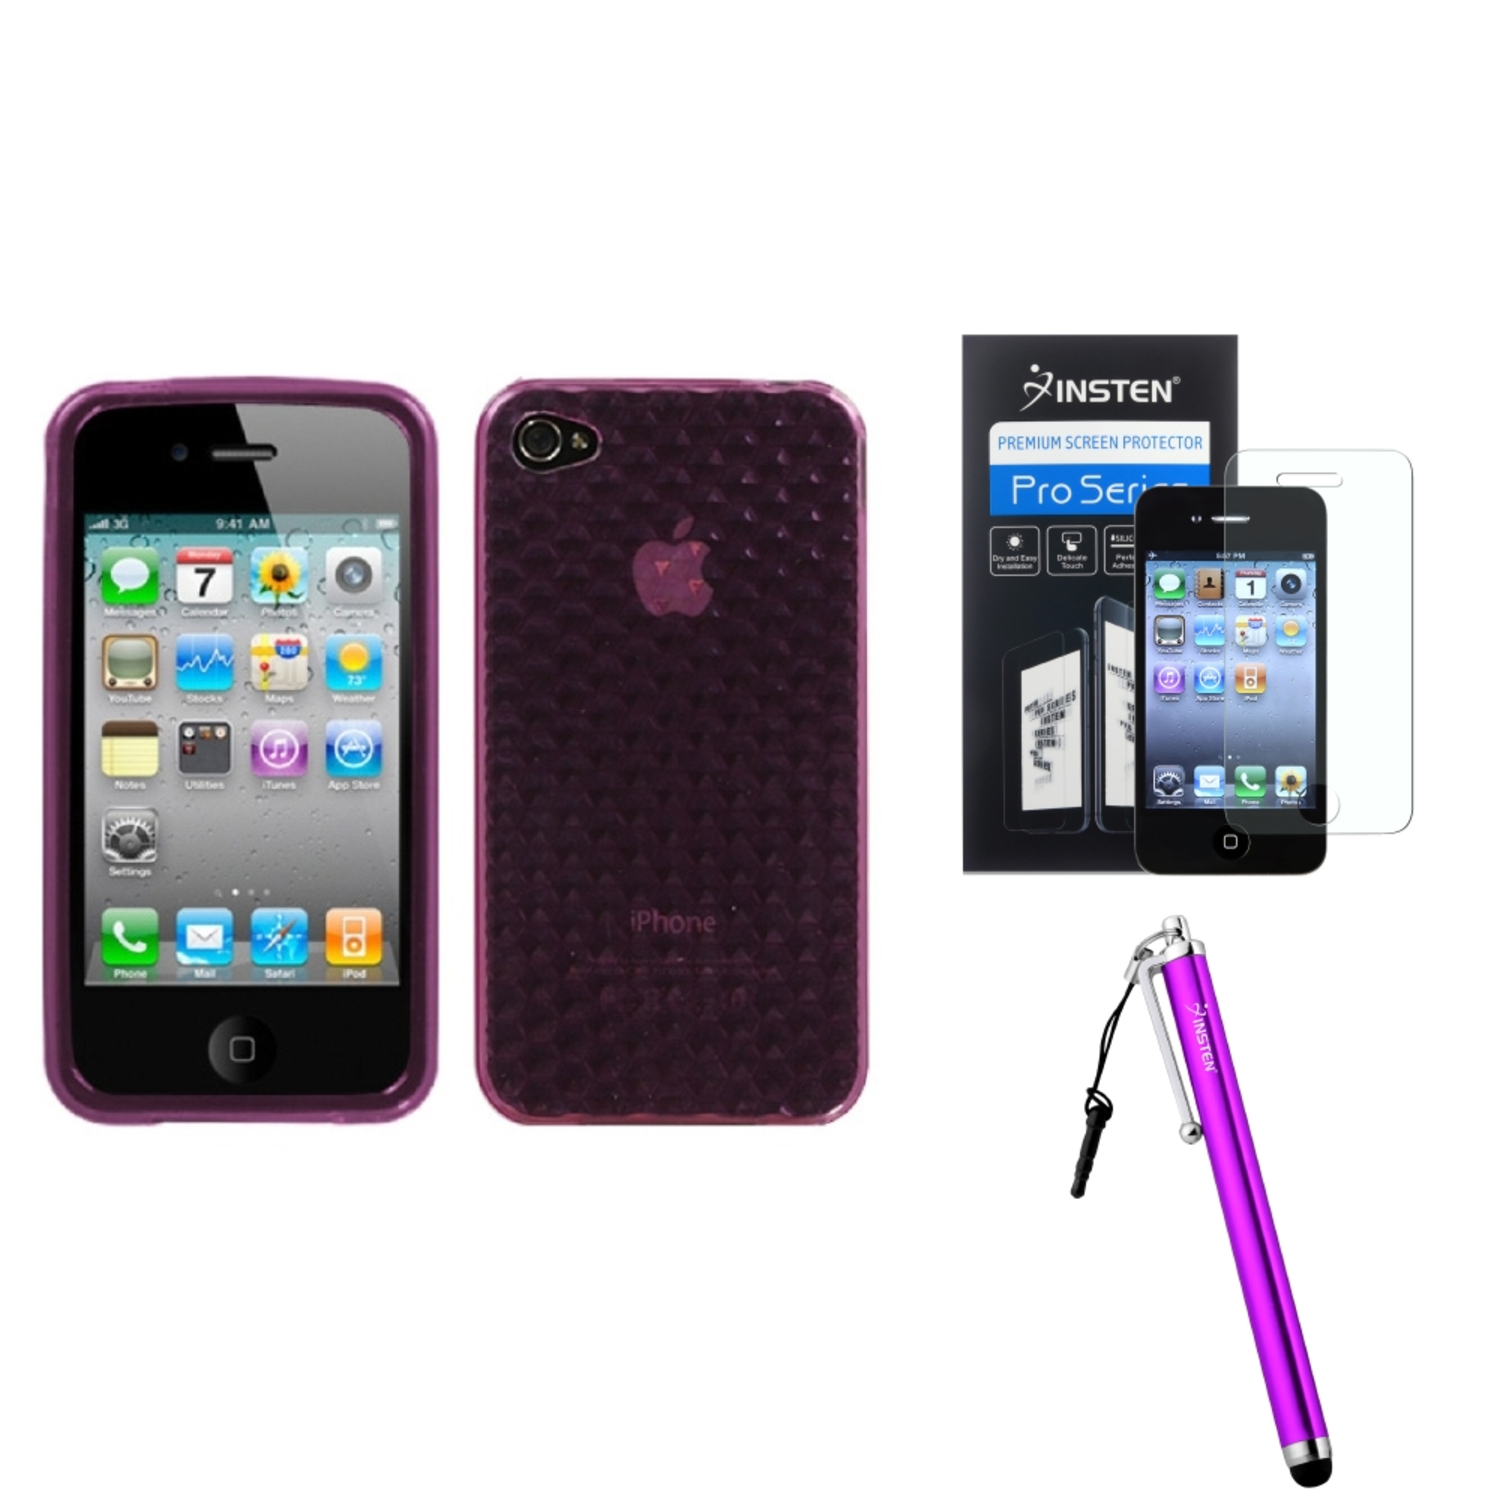 Insten Purple Cube Candy Skin Case For iPhone 4 4S + Stylus + LCD Film